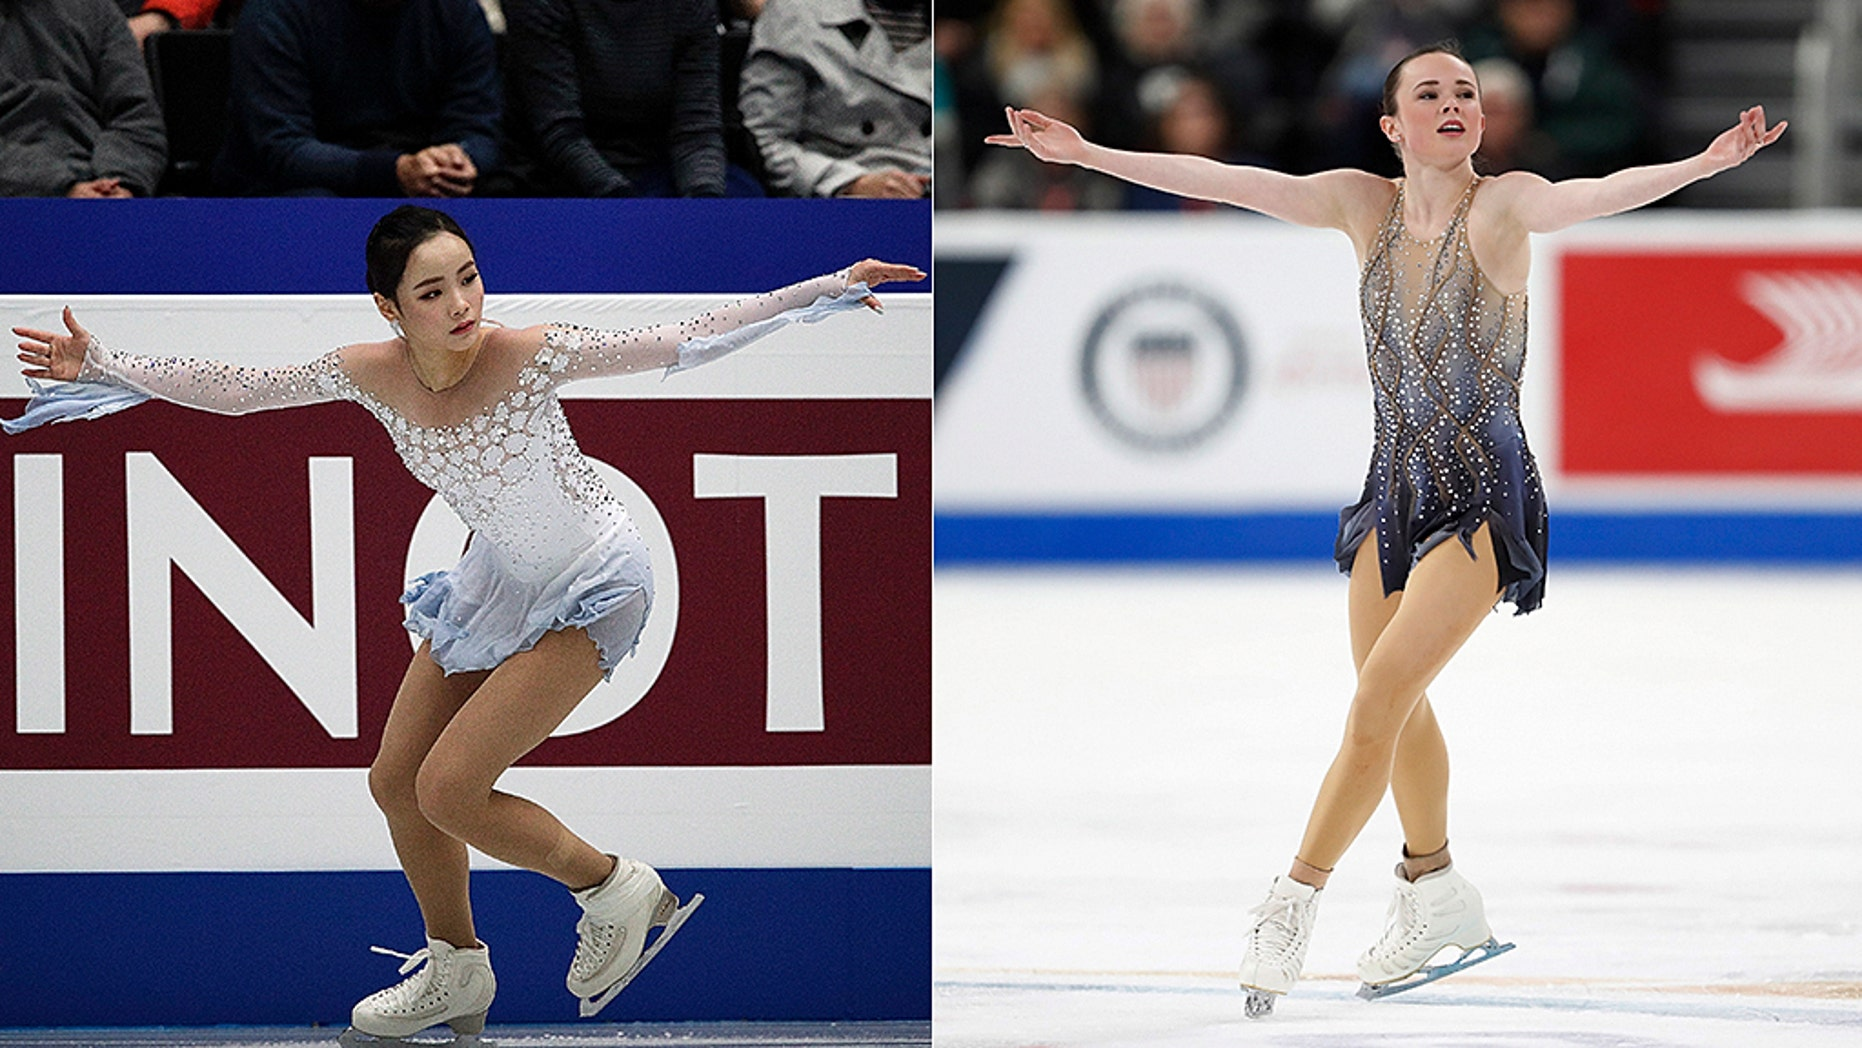 Mariah Bell, 22, an American figure skater, [right] is indicted of bullying and intentionally rupturing competition South Korean skater Lim Eun-soo [left] during warm-ups during a World Figure Skating Championships in Saitama, Japan, on Wednesday, Mar 20, 2019.